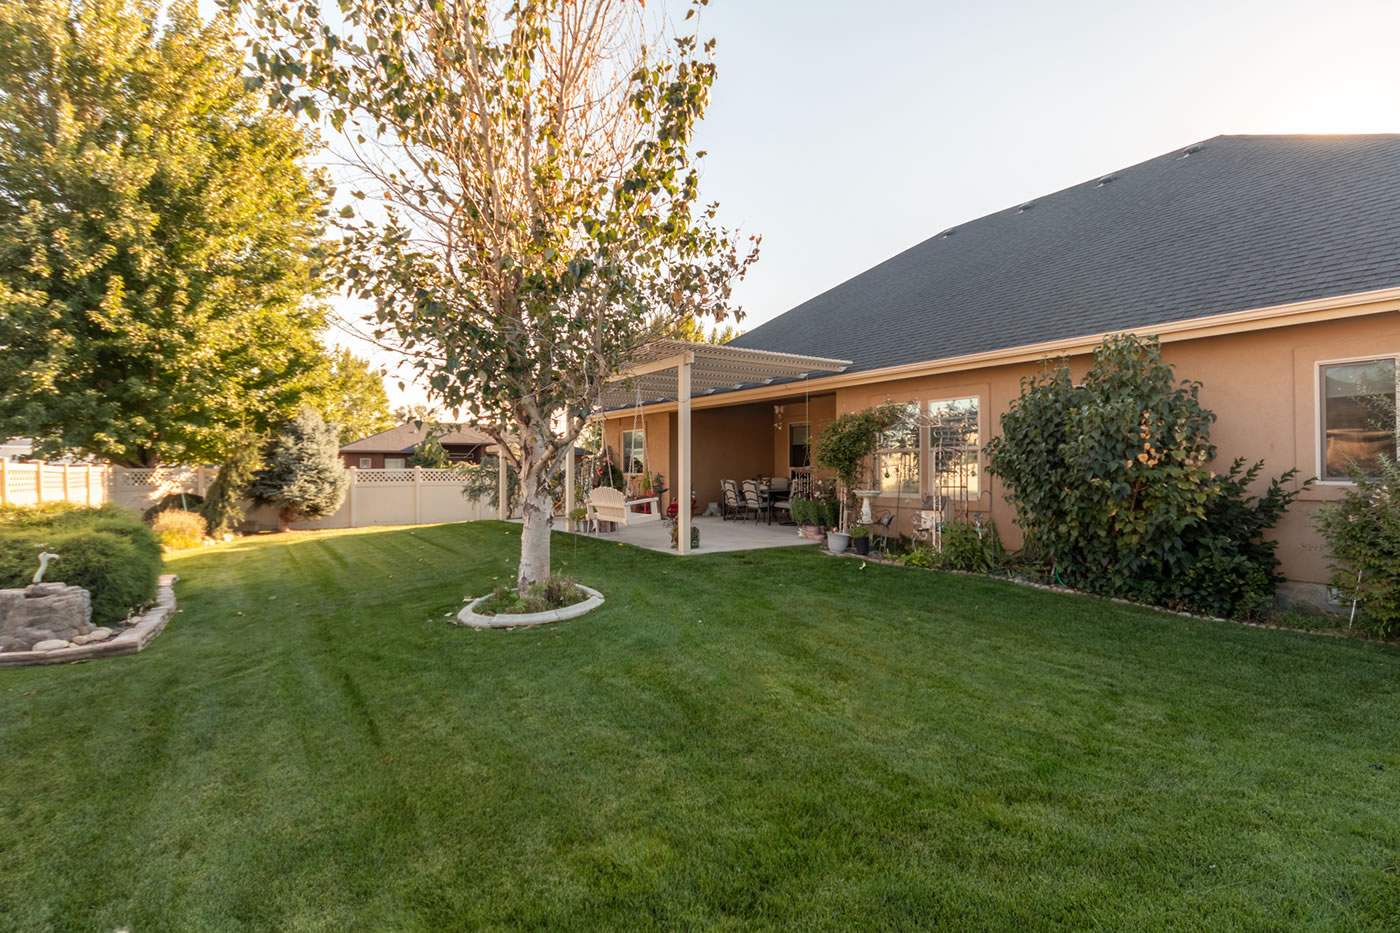 Home for Sale in Star Idaho